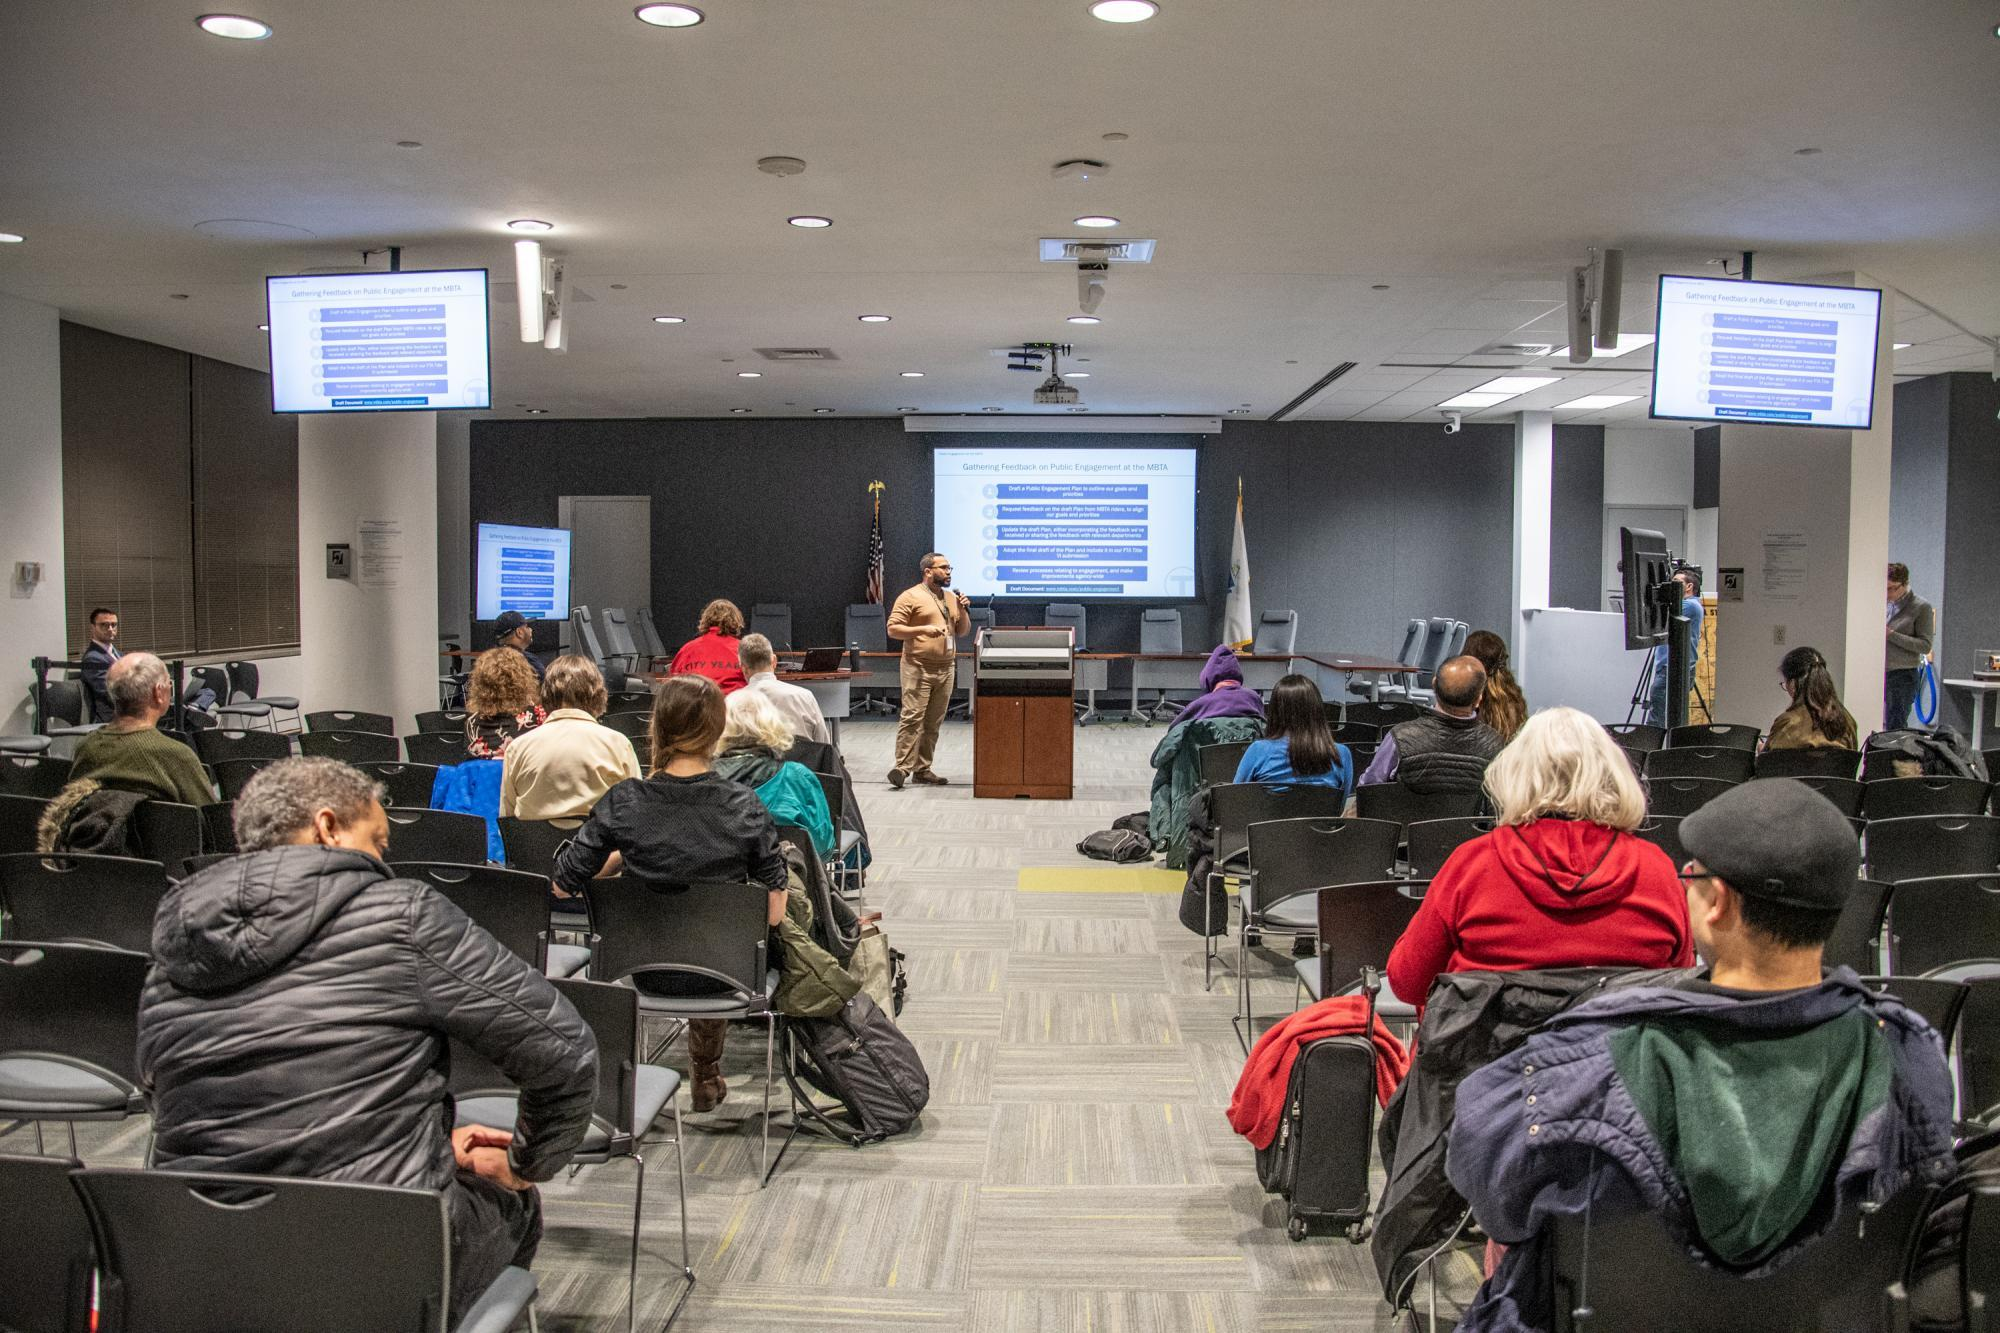 Community members at a public meeting at the State Transportation Building, with 3 screens showing meeting presentation slides and a speaker at the front.